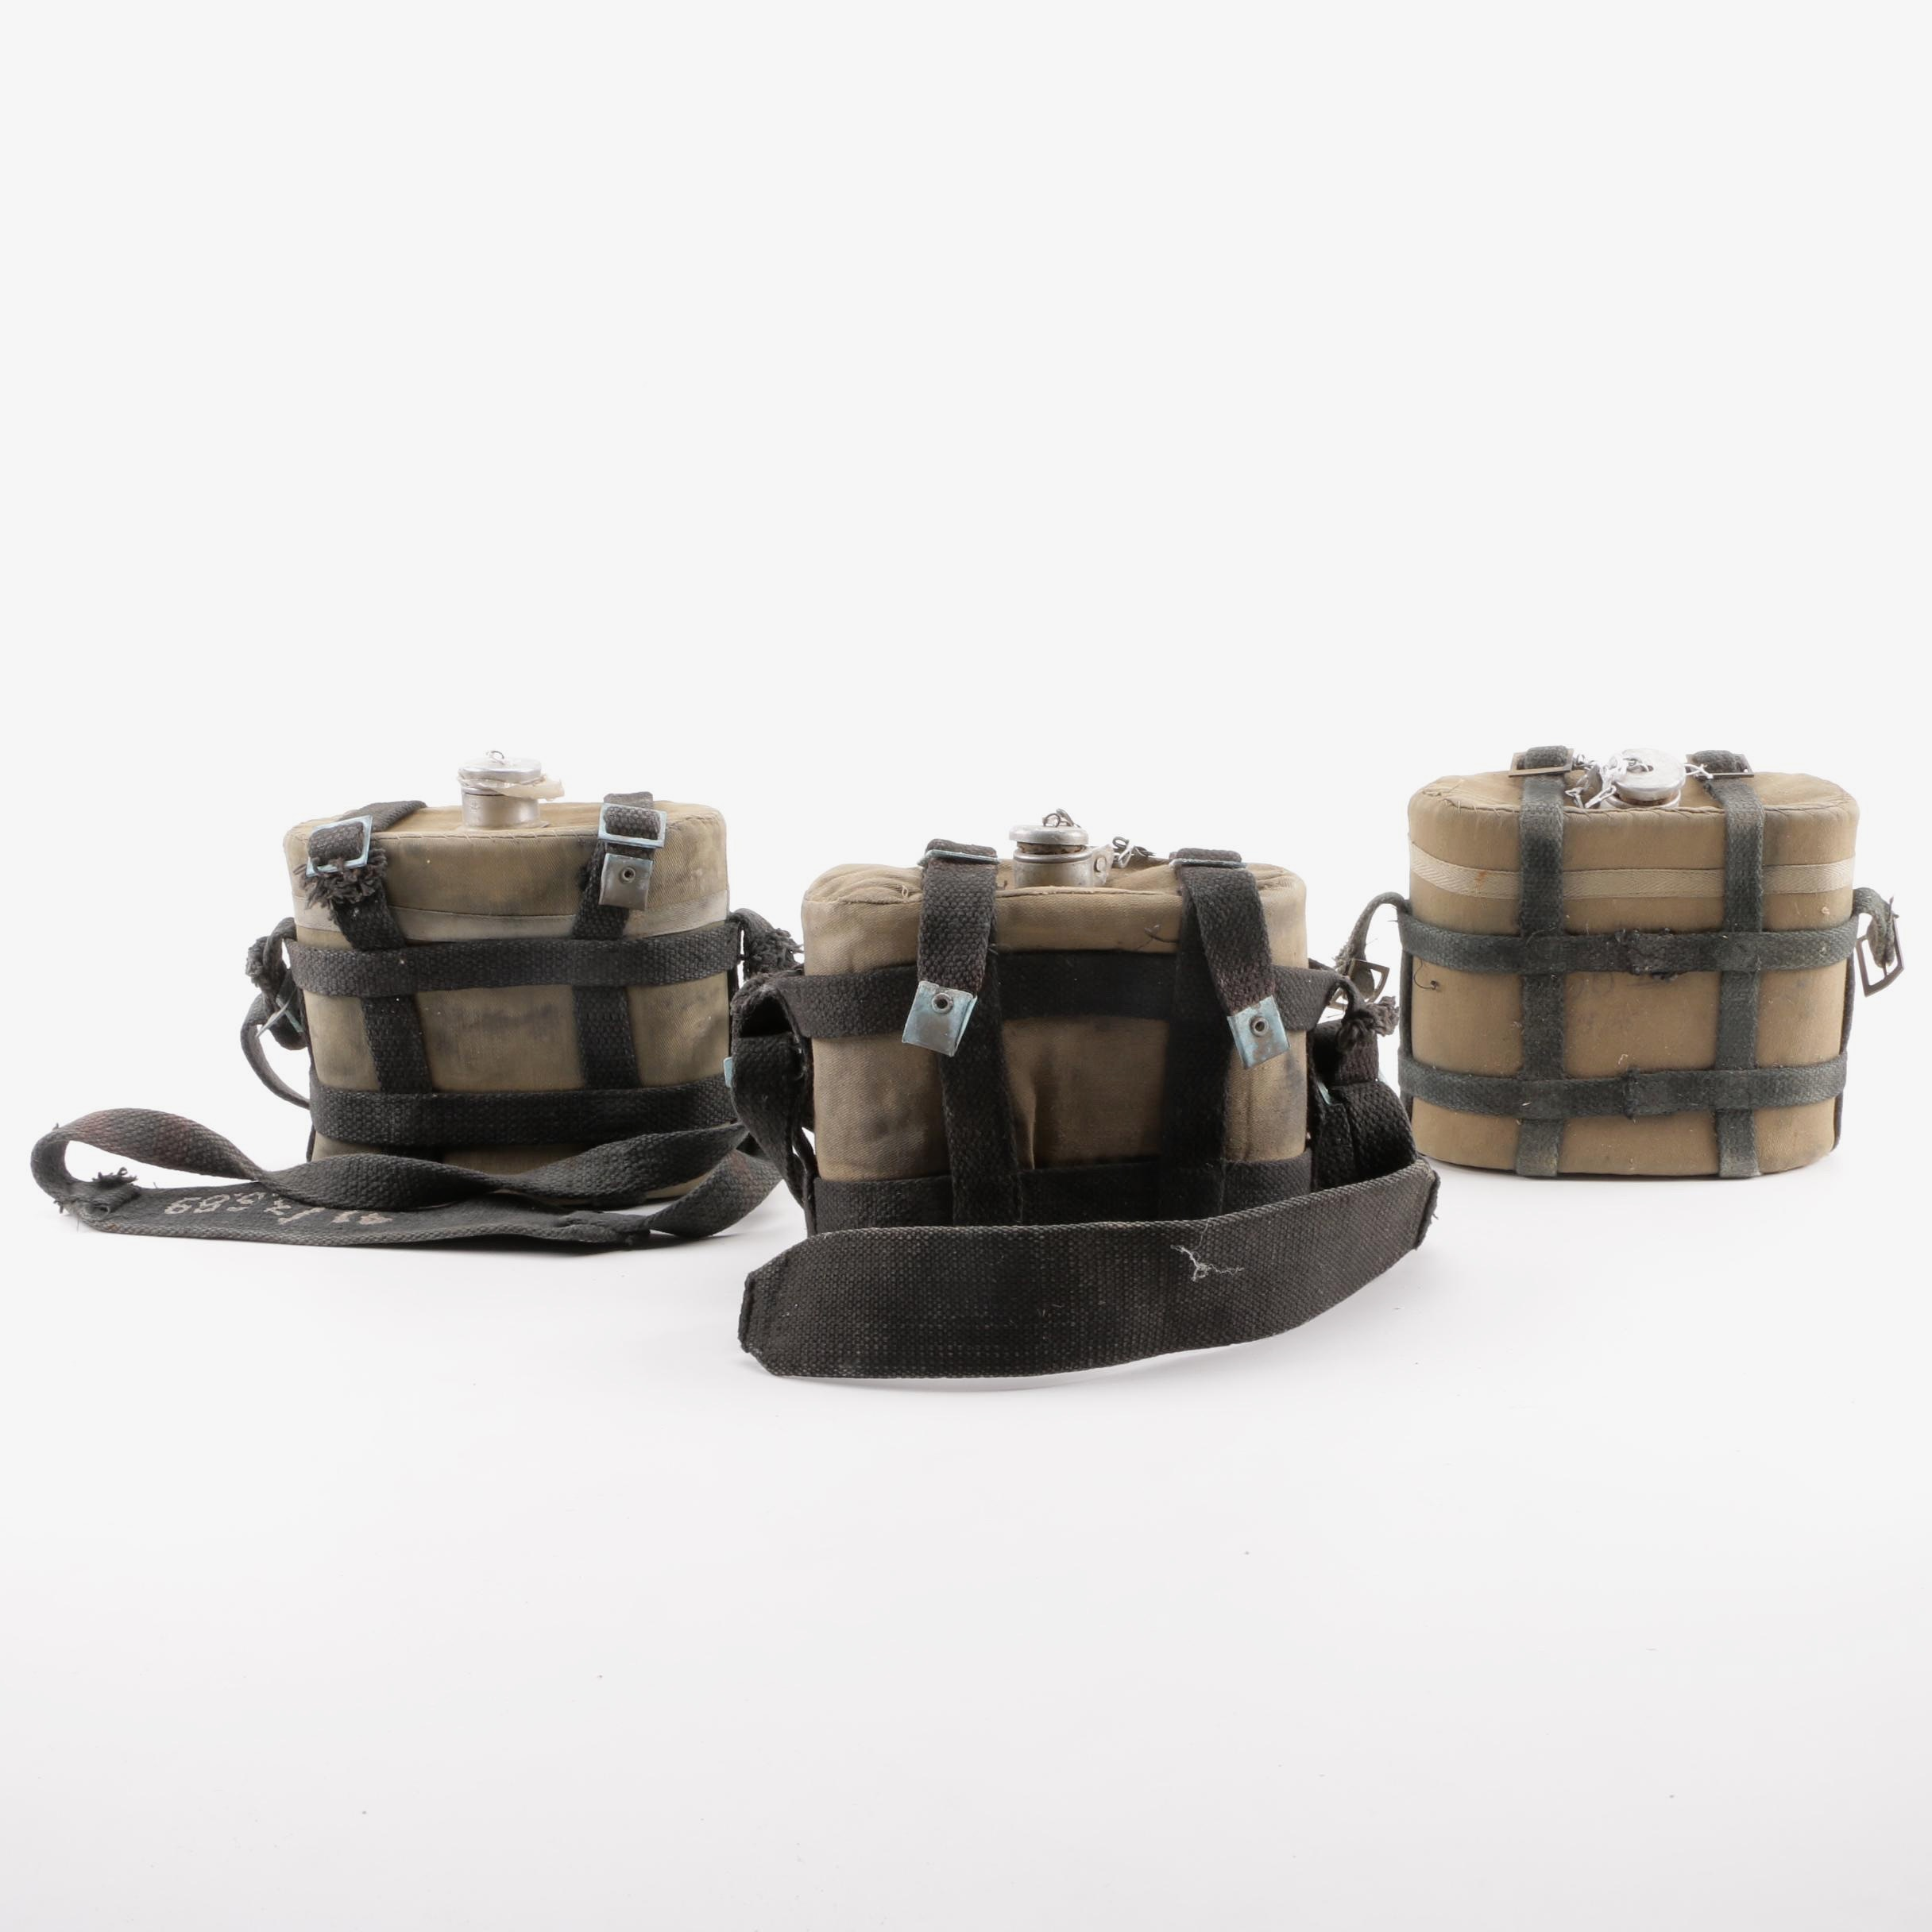 Vintage Military Canteens